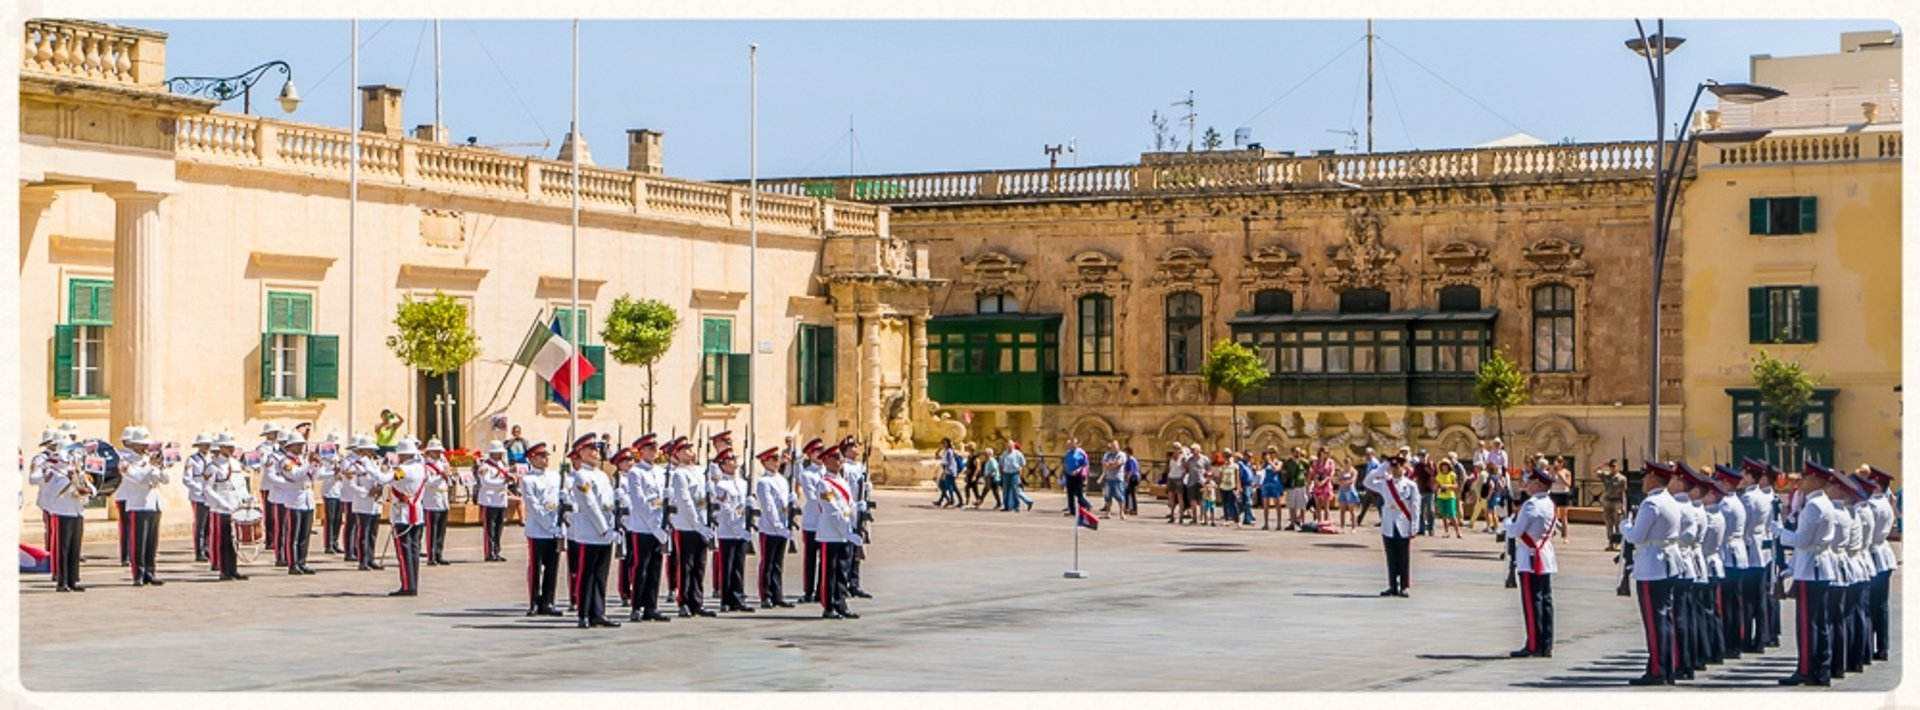 Changing of the Guard in Malta 2019 - Best Time